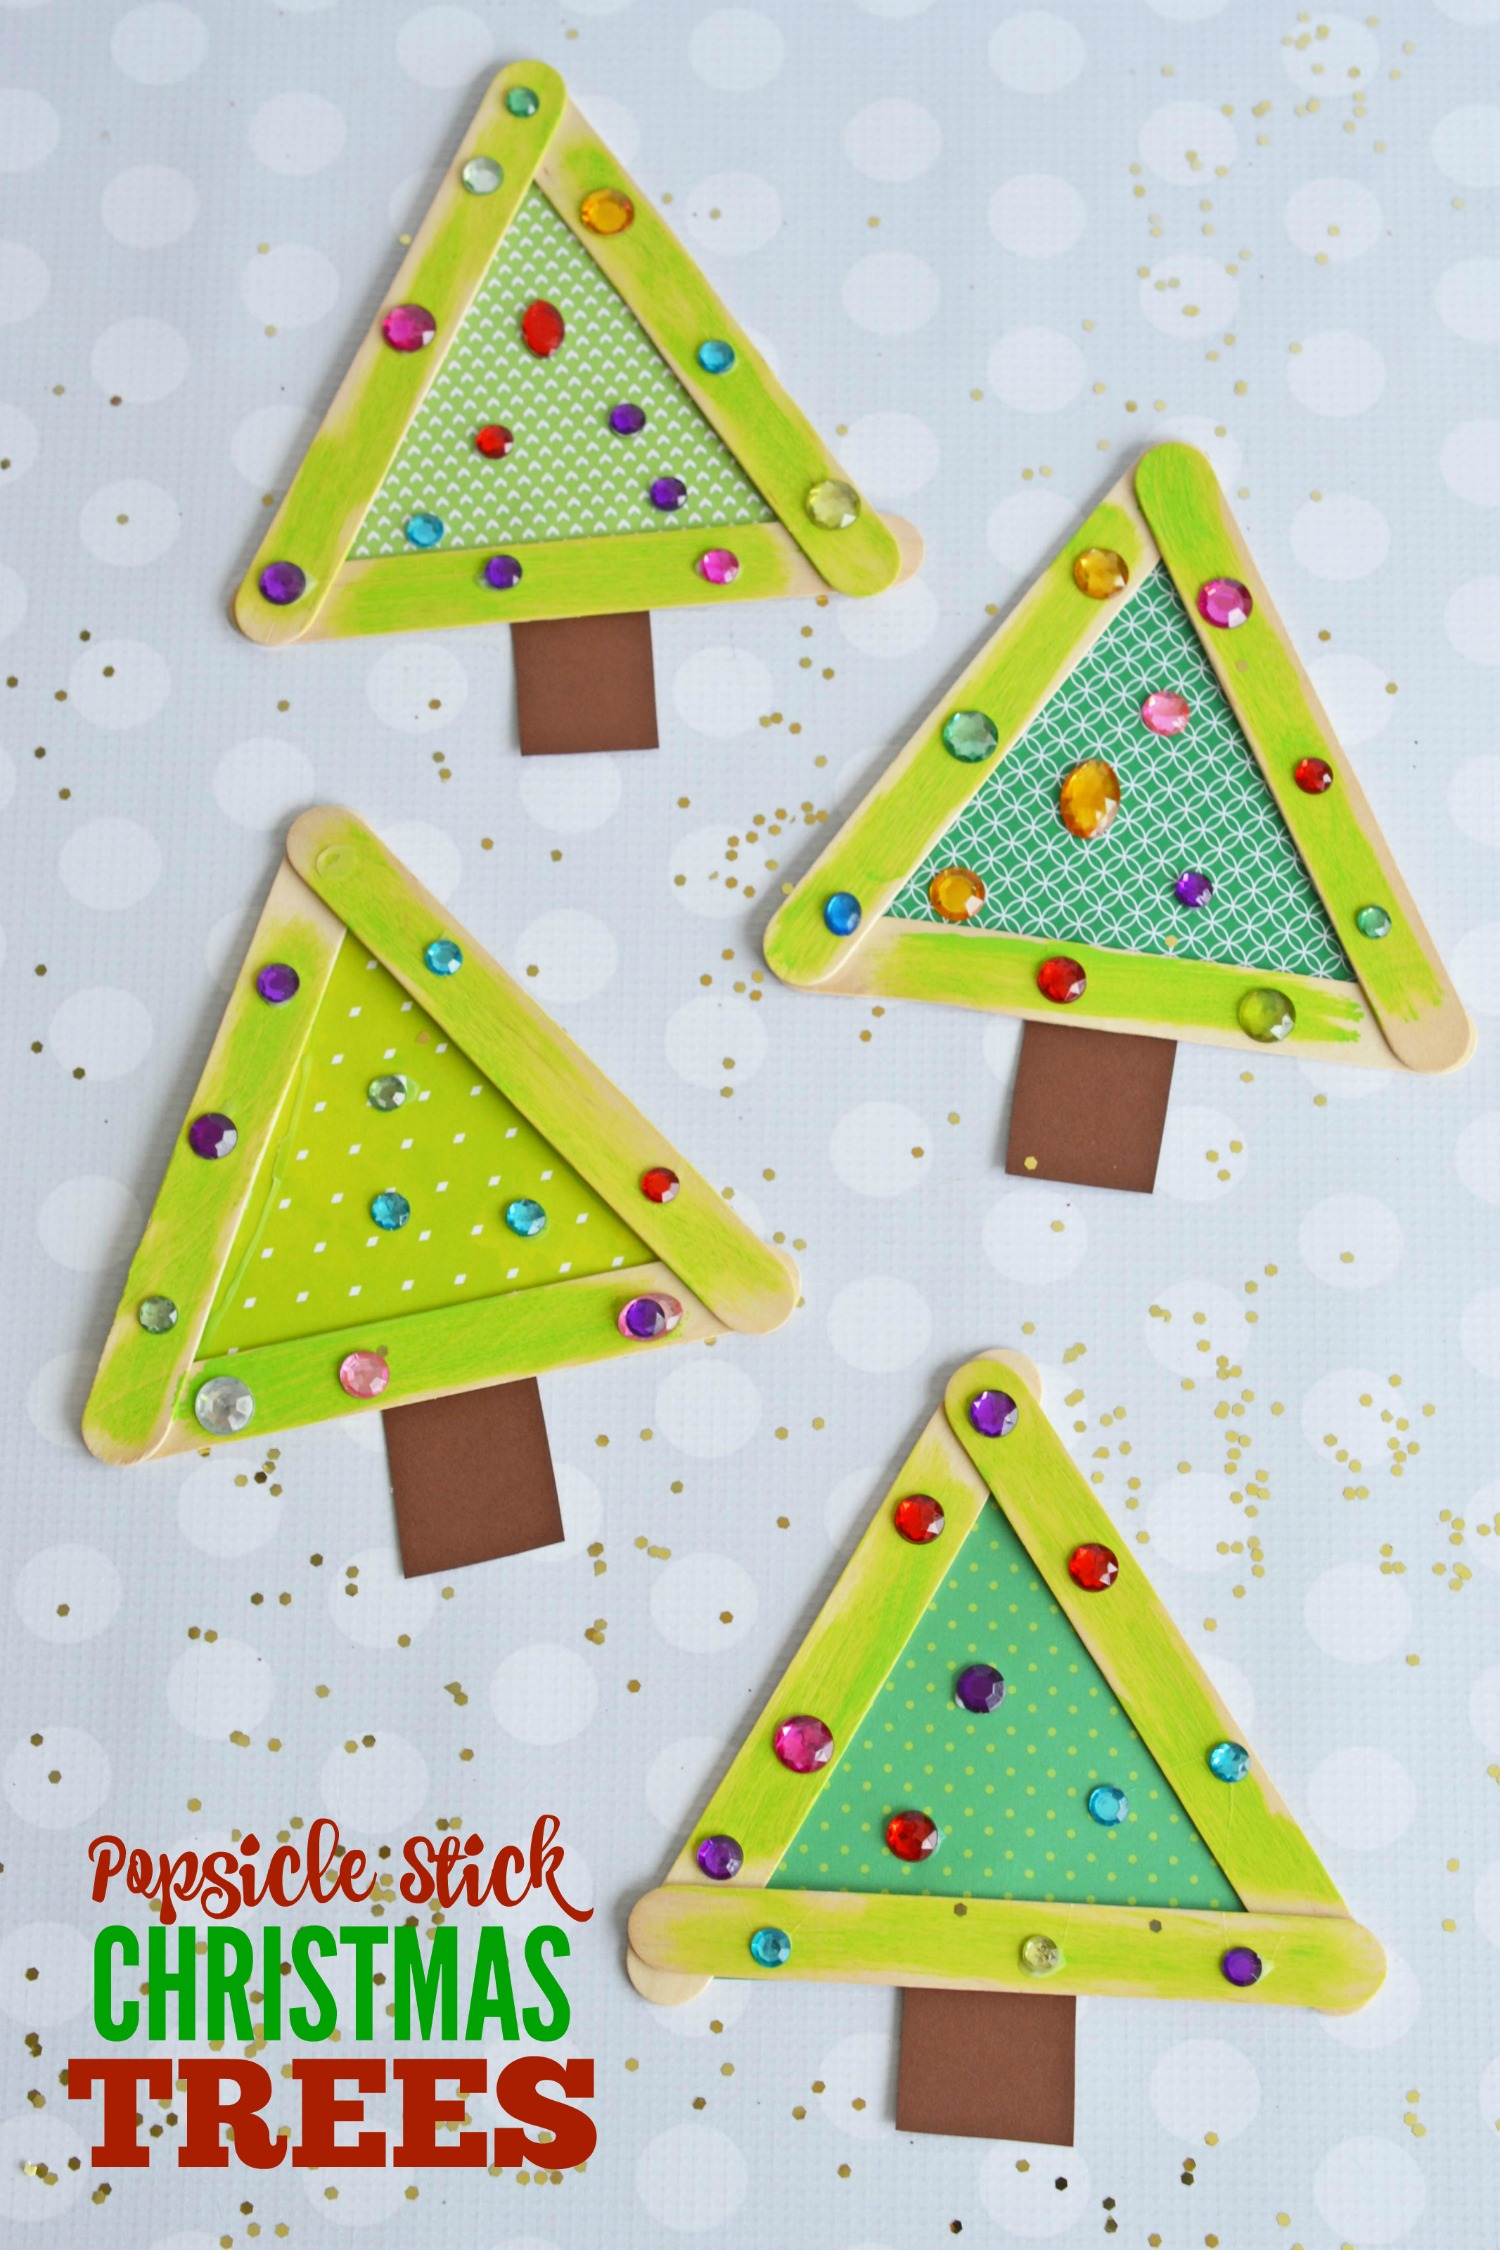 Easy Christmas Crafts With Popsicle Sticks